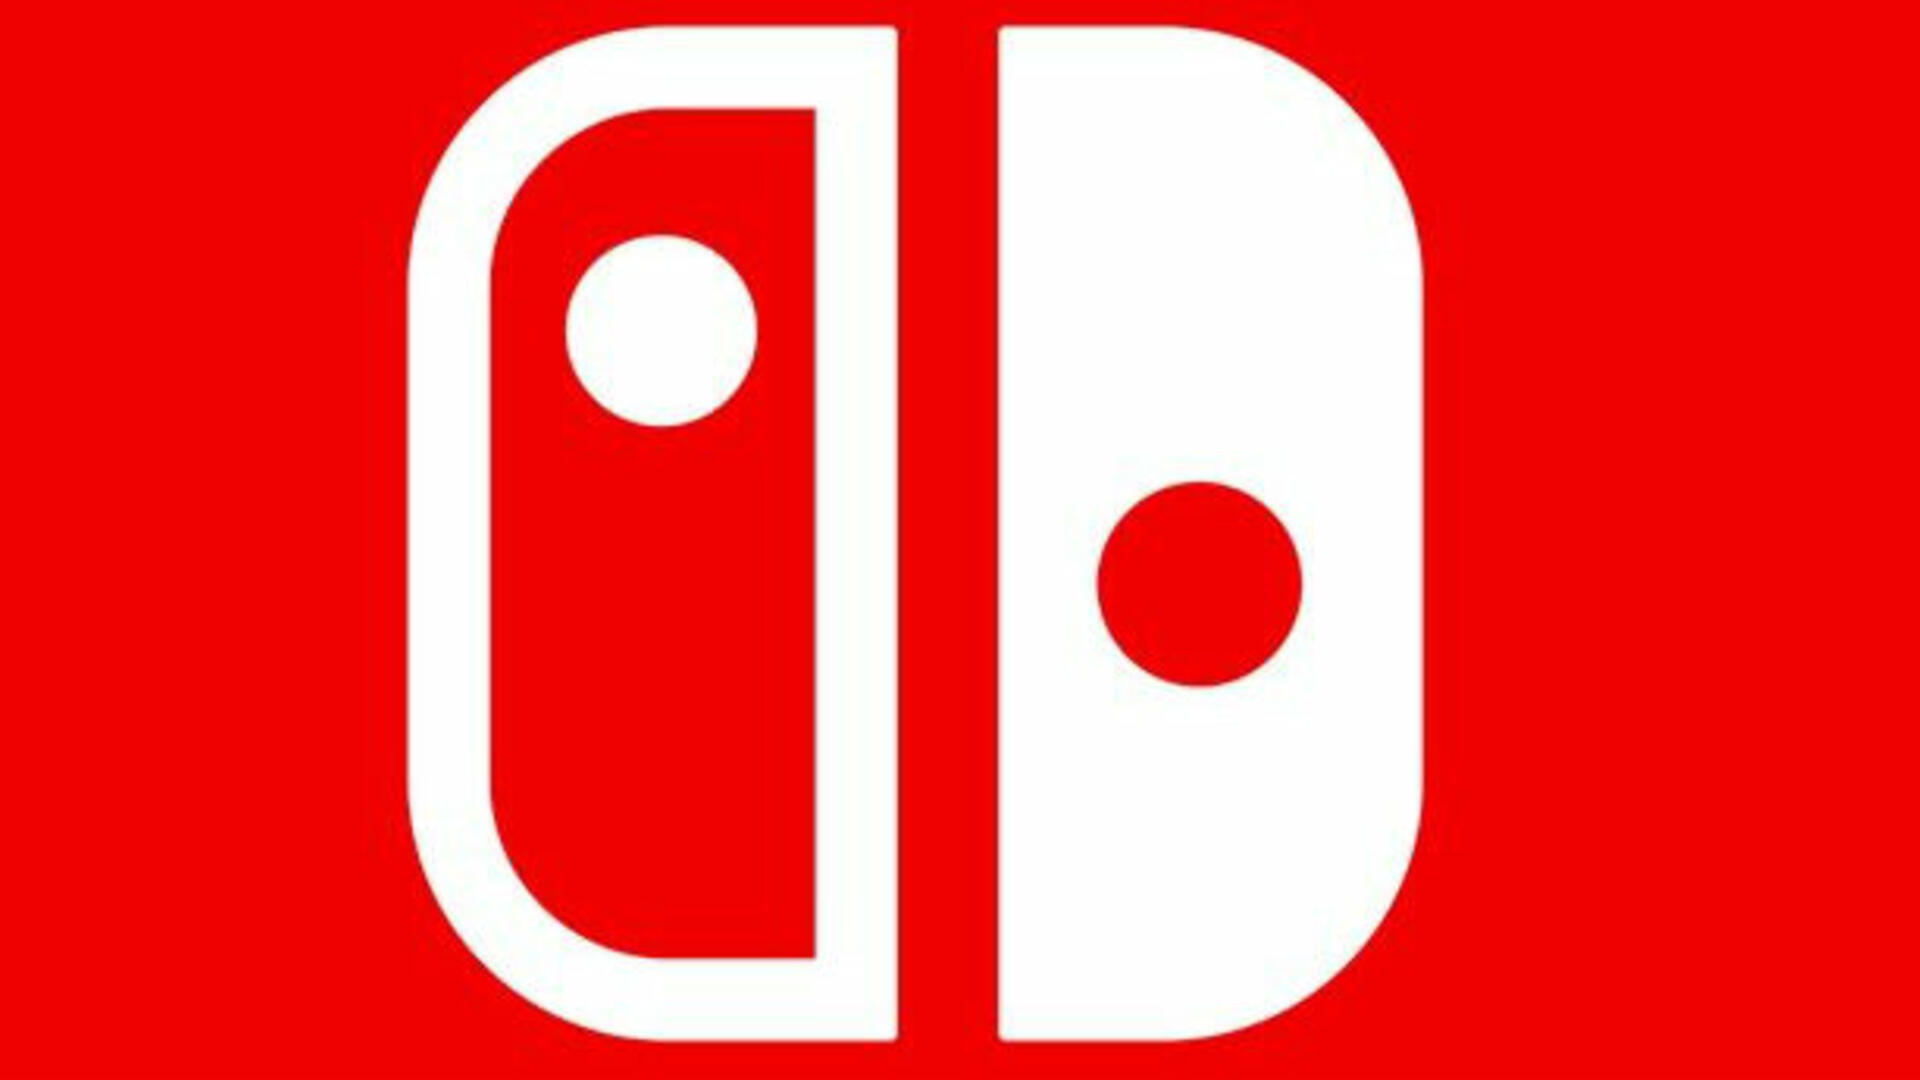 Nintendo Had an Amazing Month of Sales in October Thanks to the Switch, SNES Classic, and Super Mario Odyssey